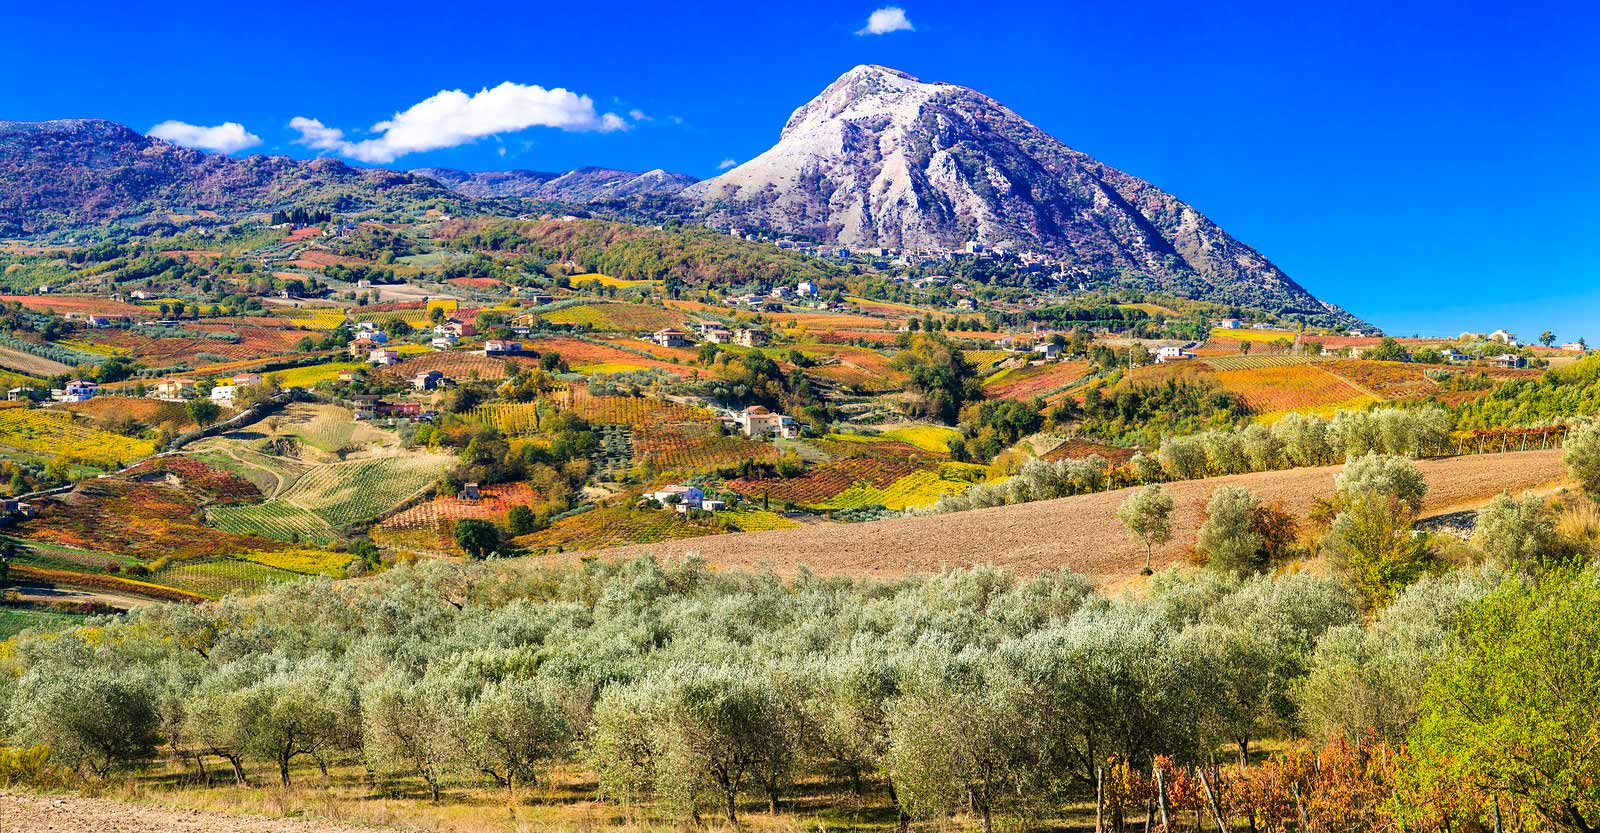 The spectacular landscape of Benevento province in Campania, Italy.